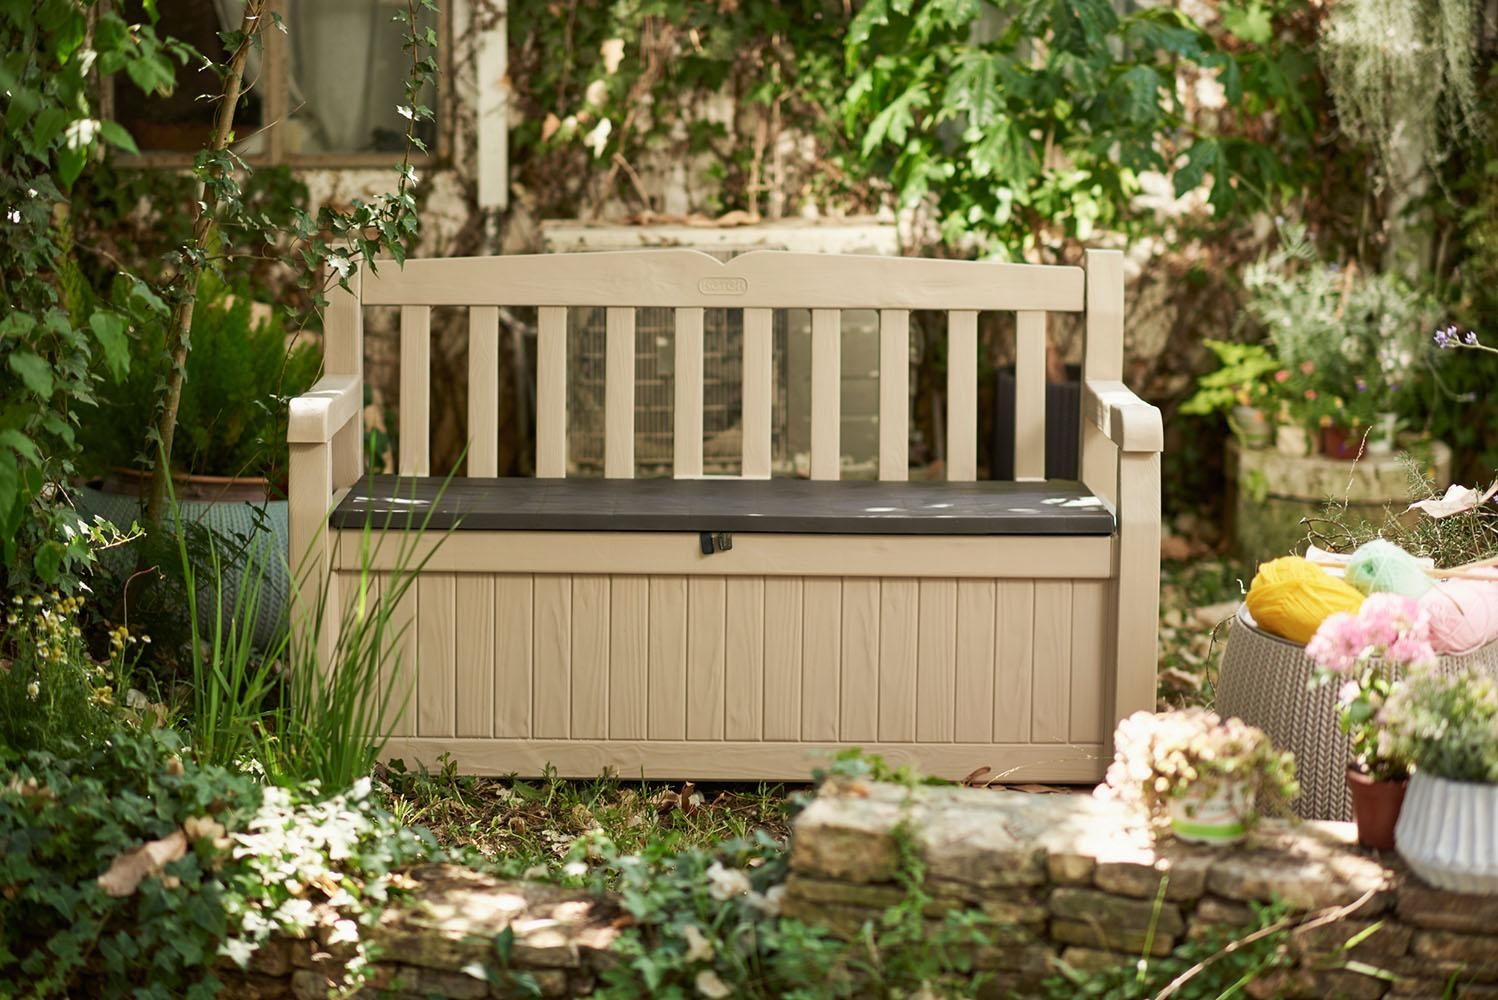 Peachy Keter Eden Garden Bench Outdoor Storage Deck Box Poolside Gmtry Best Dining Table And Chair Ideas Images Gmtryco